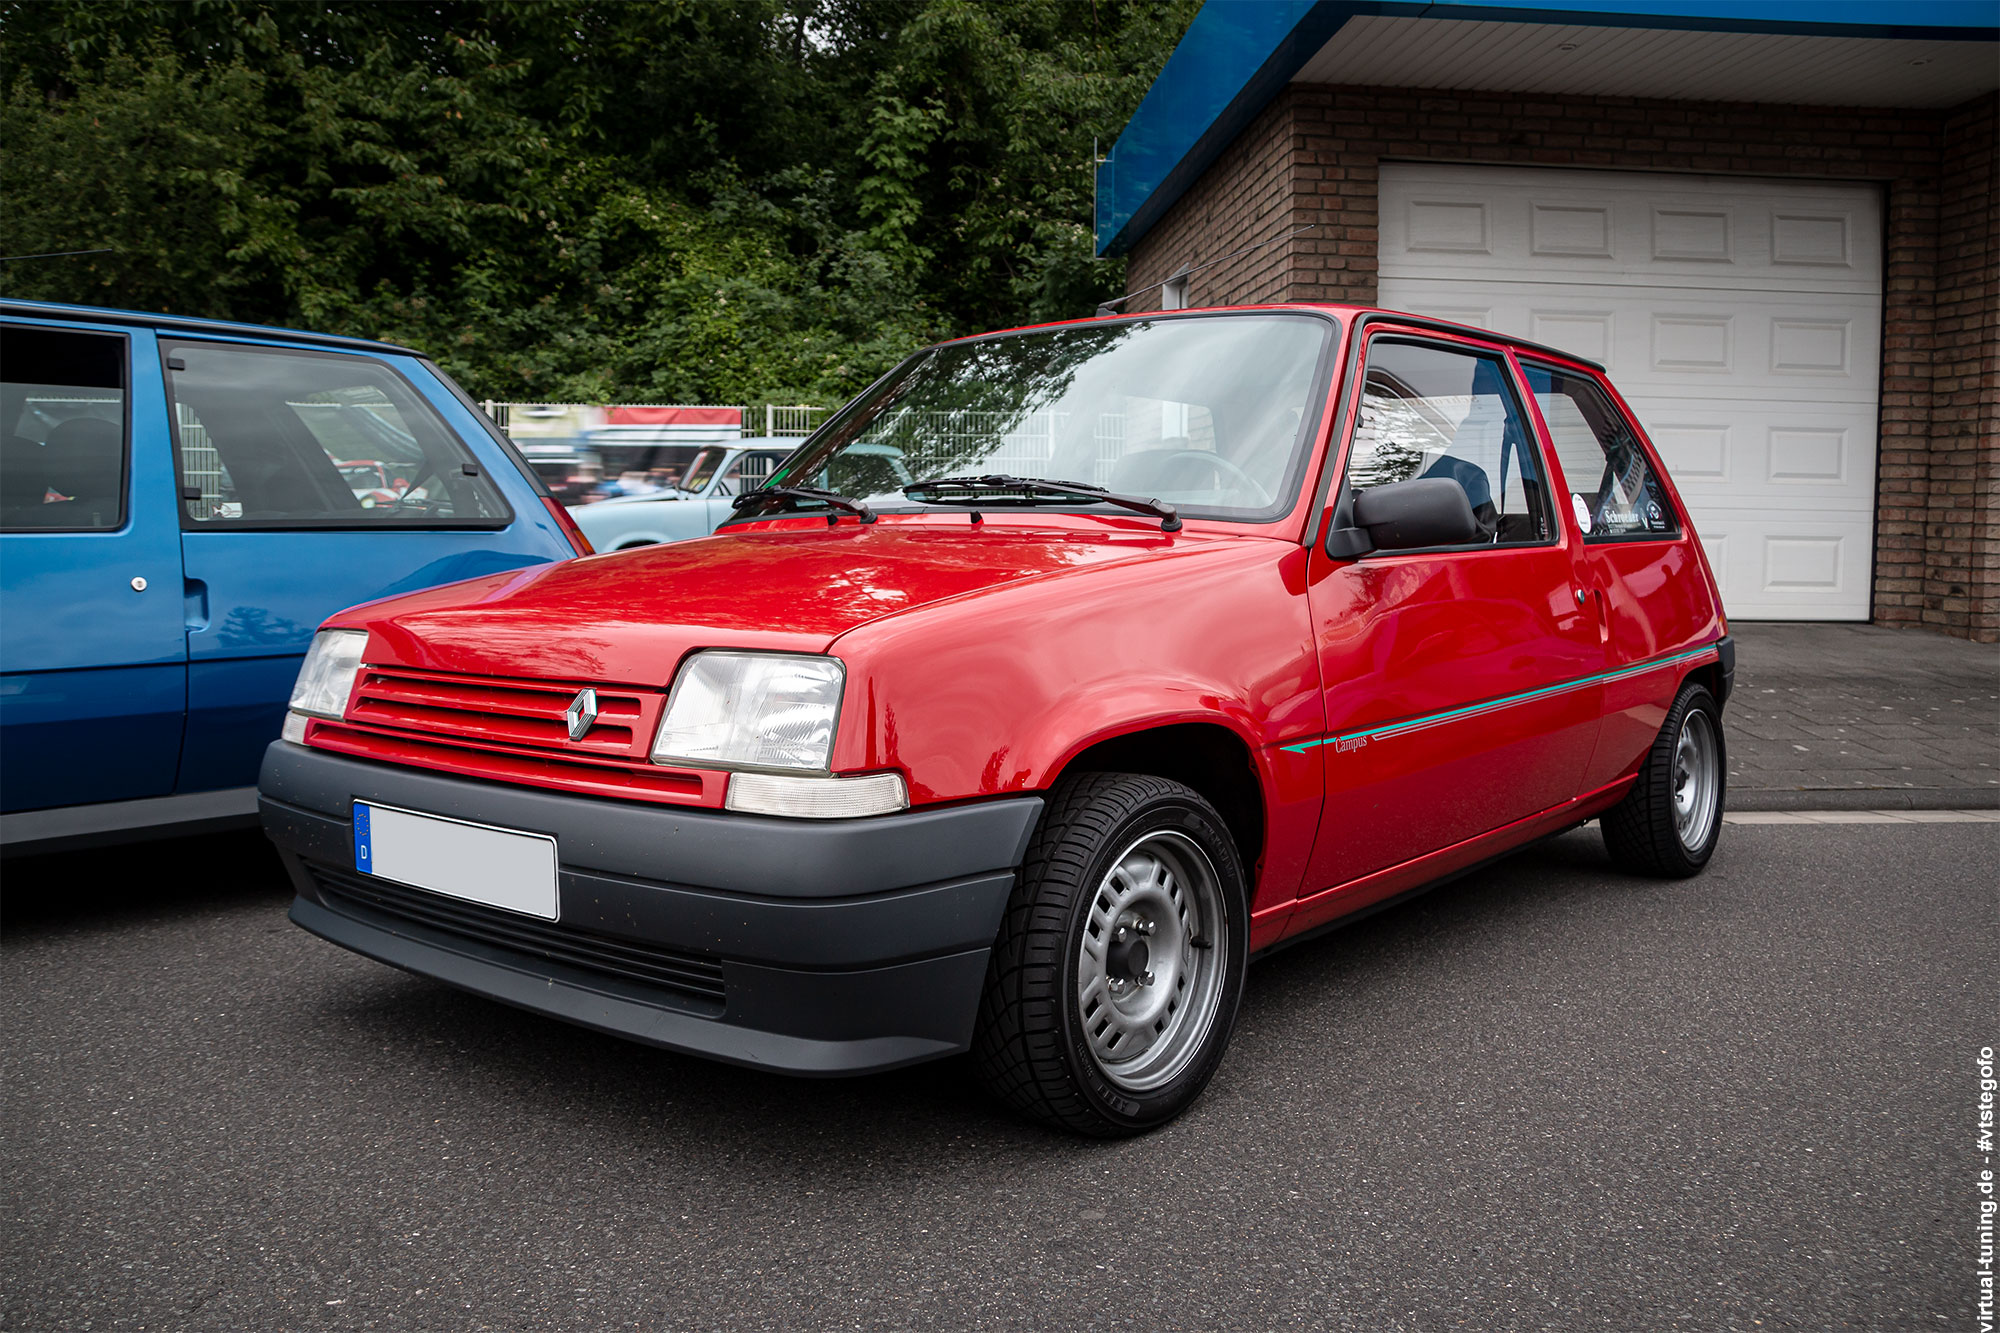 Renault 5 Campus - R.S. meets Cafe 477 (06-2020)